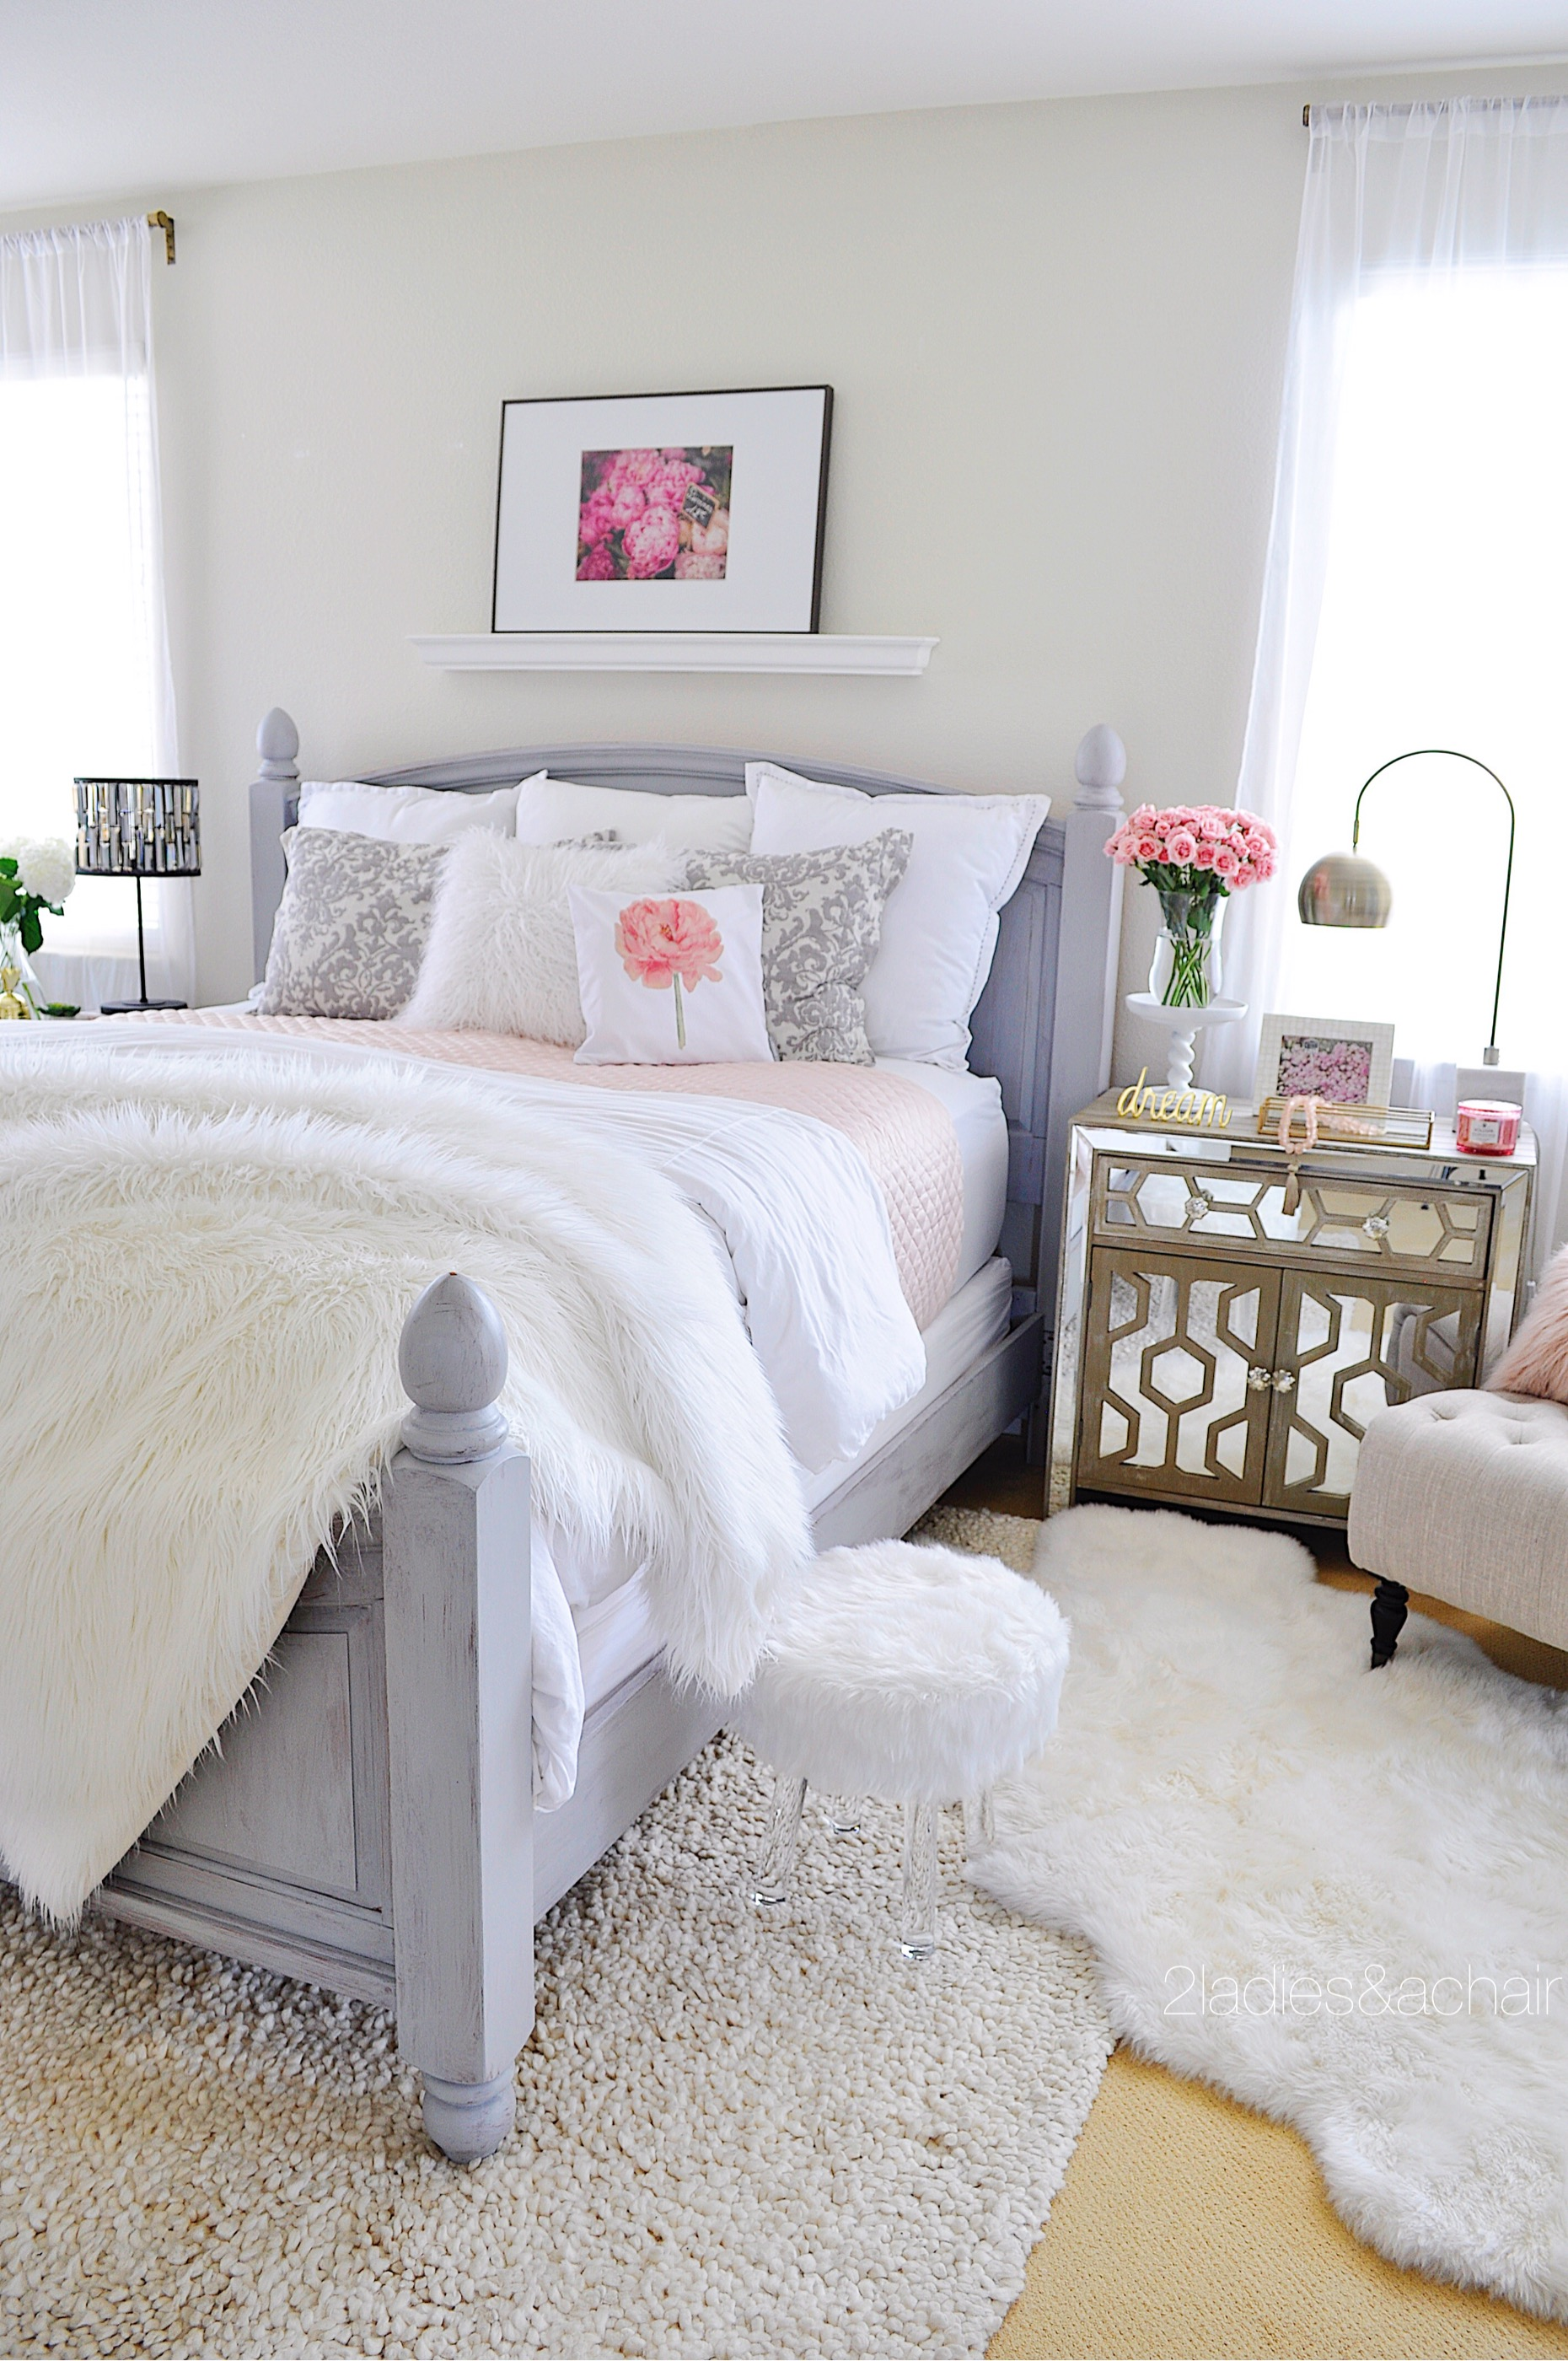 Bedroom Decorating Ideas: Before and After — 2 Ladies & A ... on Bedroom Decoration Ideas  id=31842